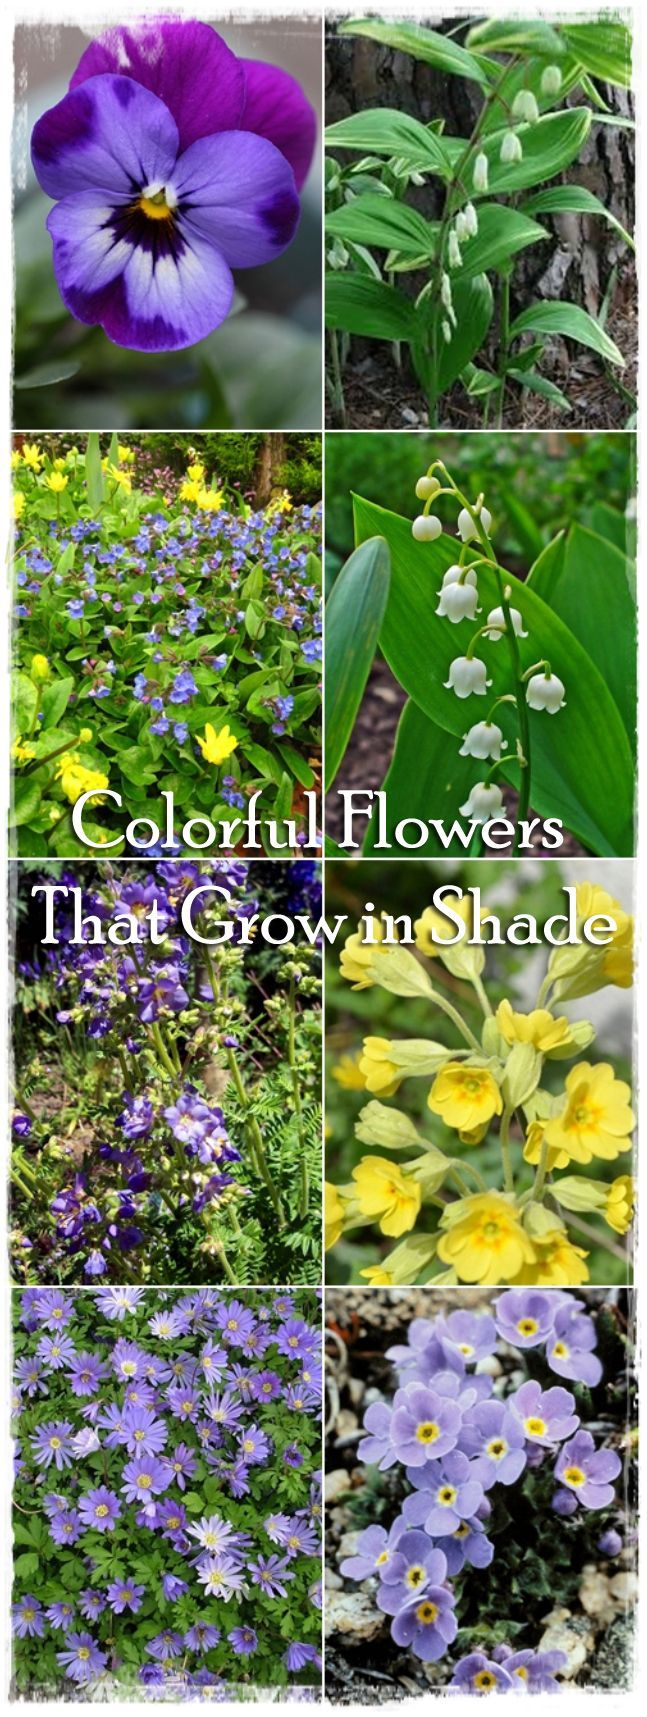 Colorful Flowers That Grow In Shade Naturalgardenideas